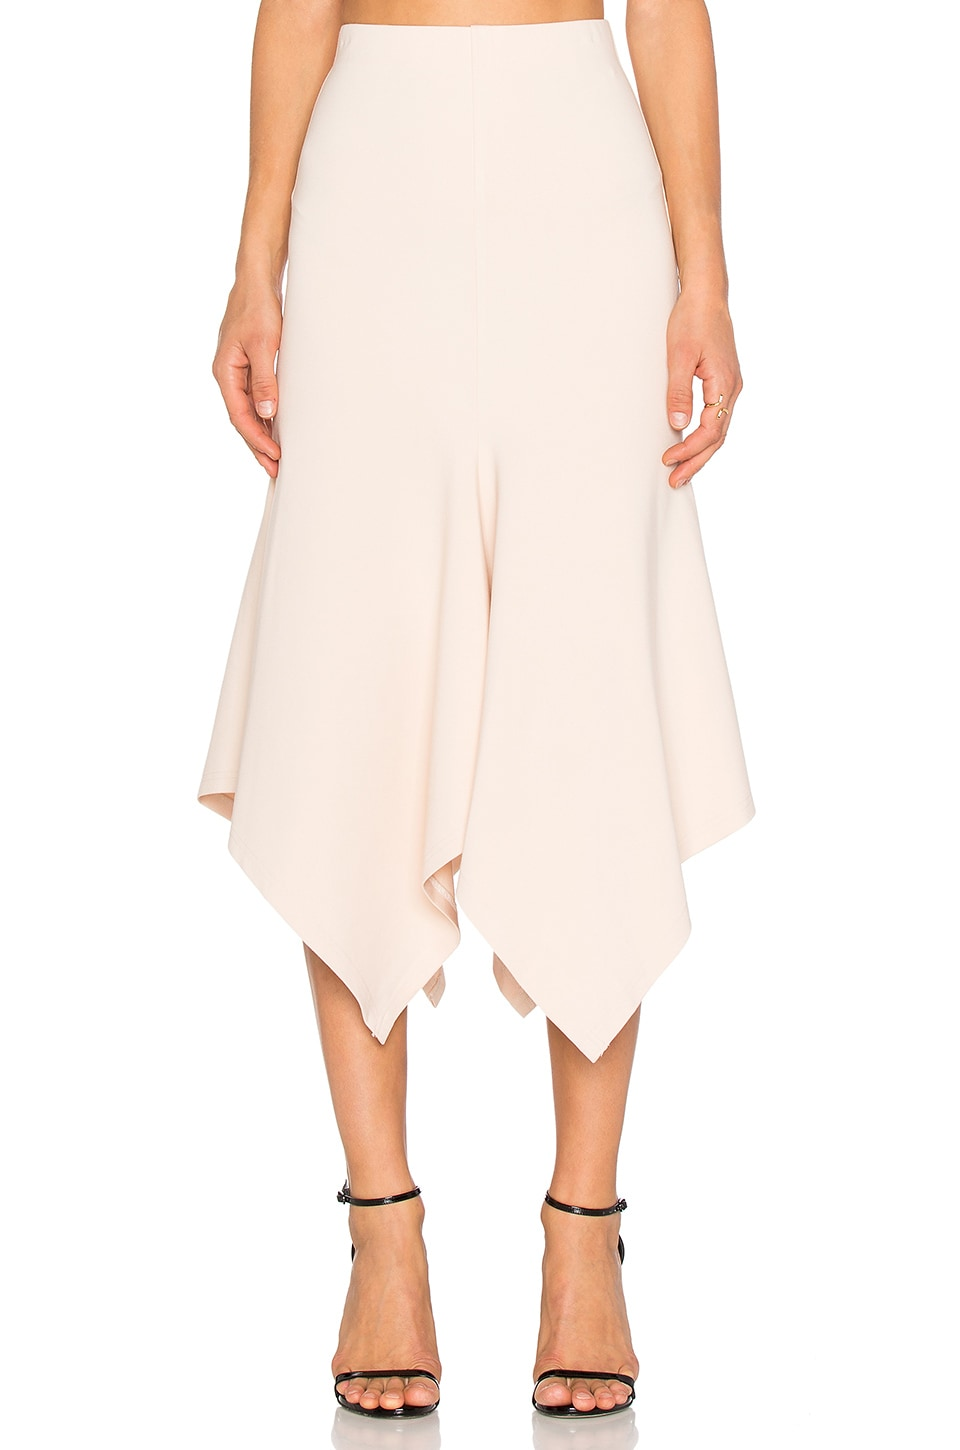 Another Love Skirt at REVOLVE